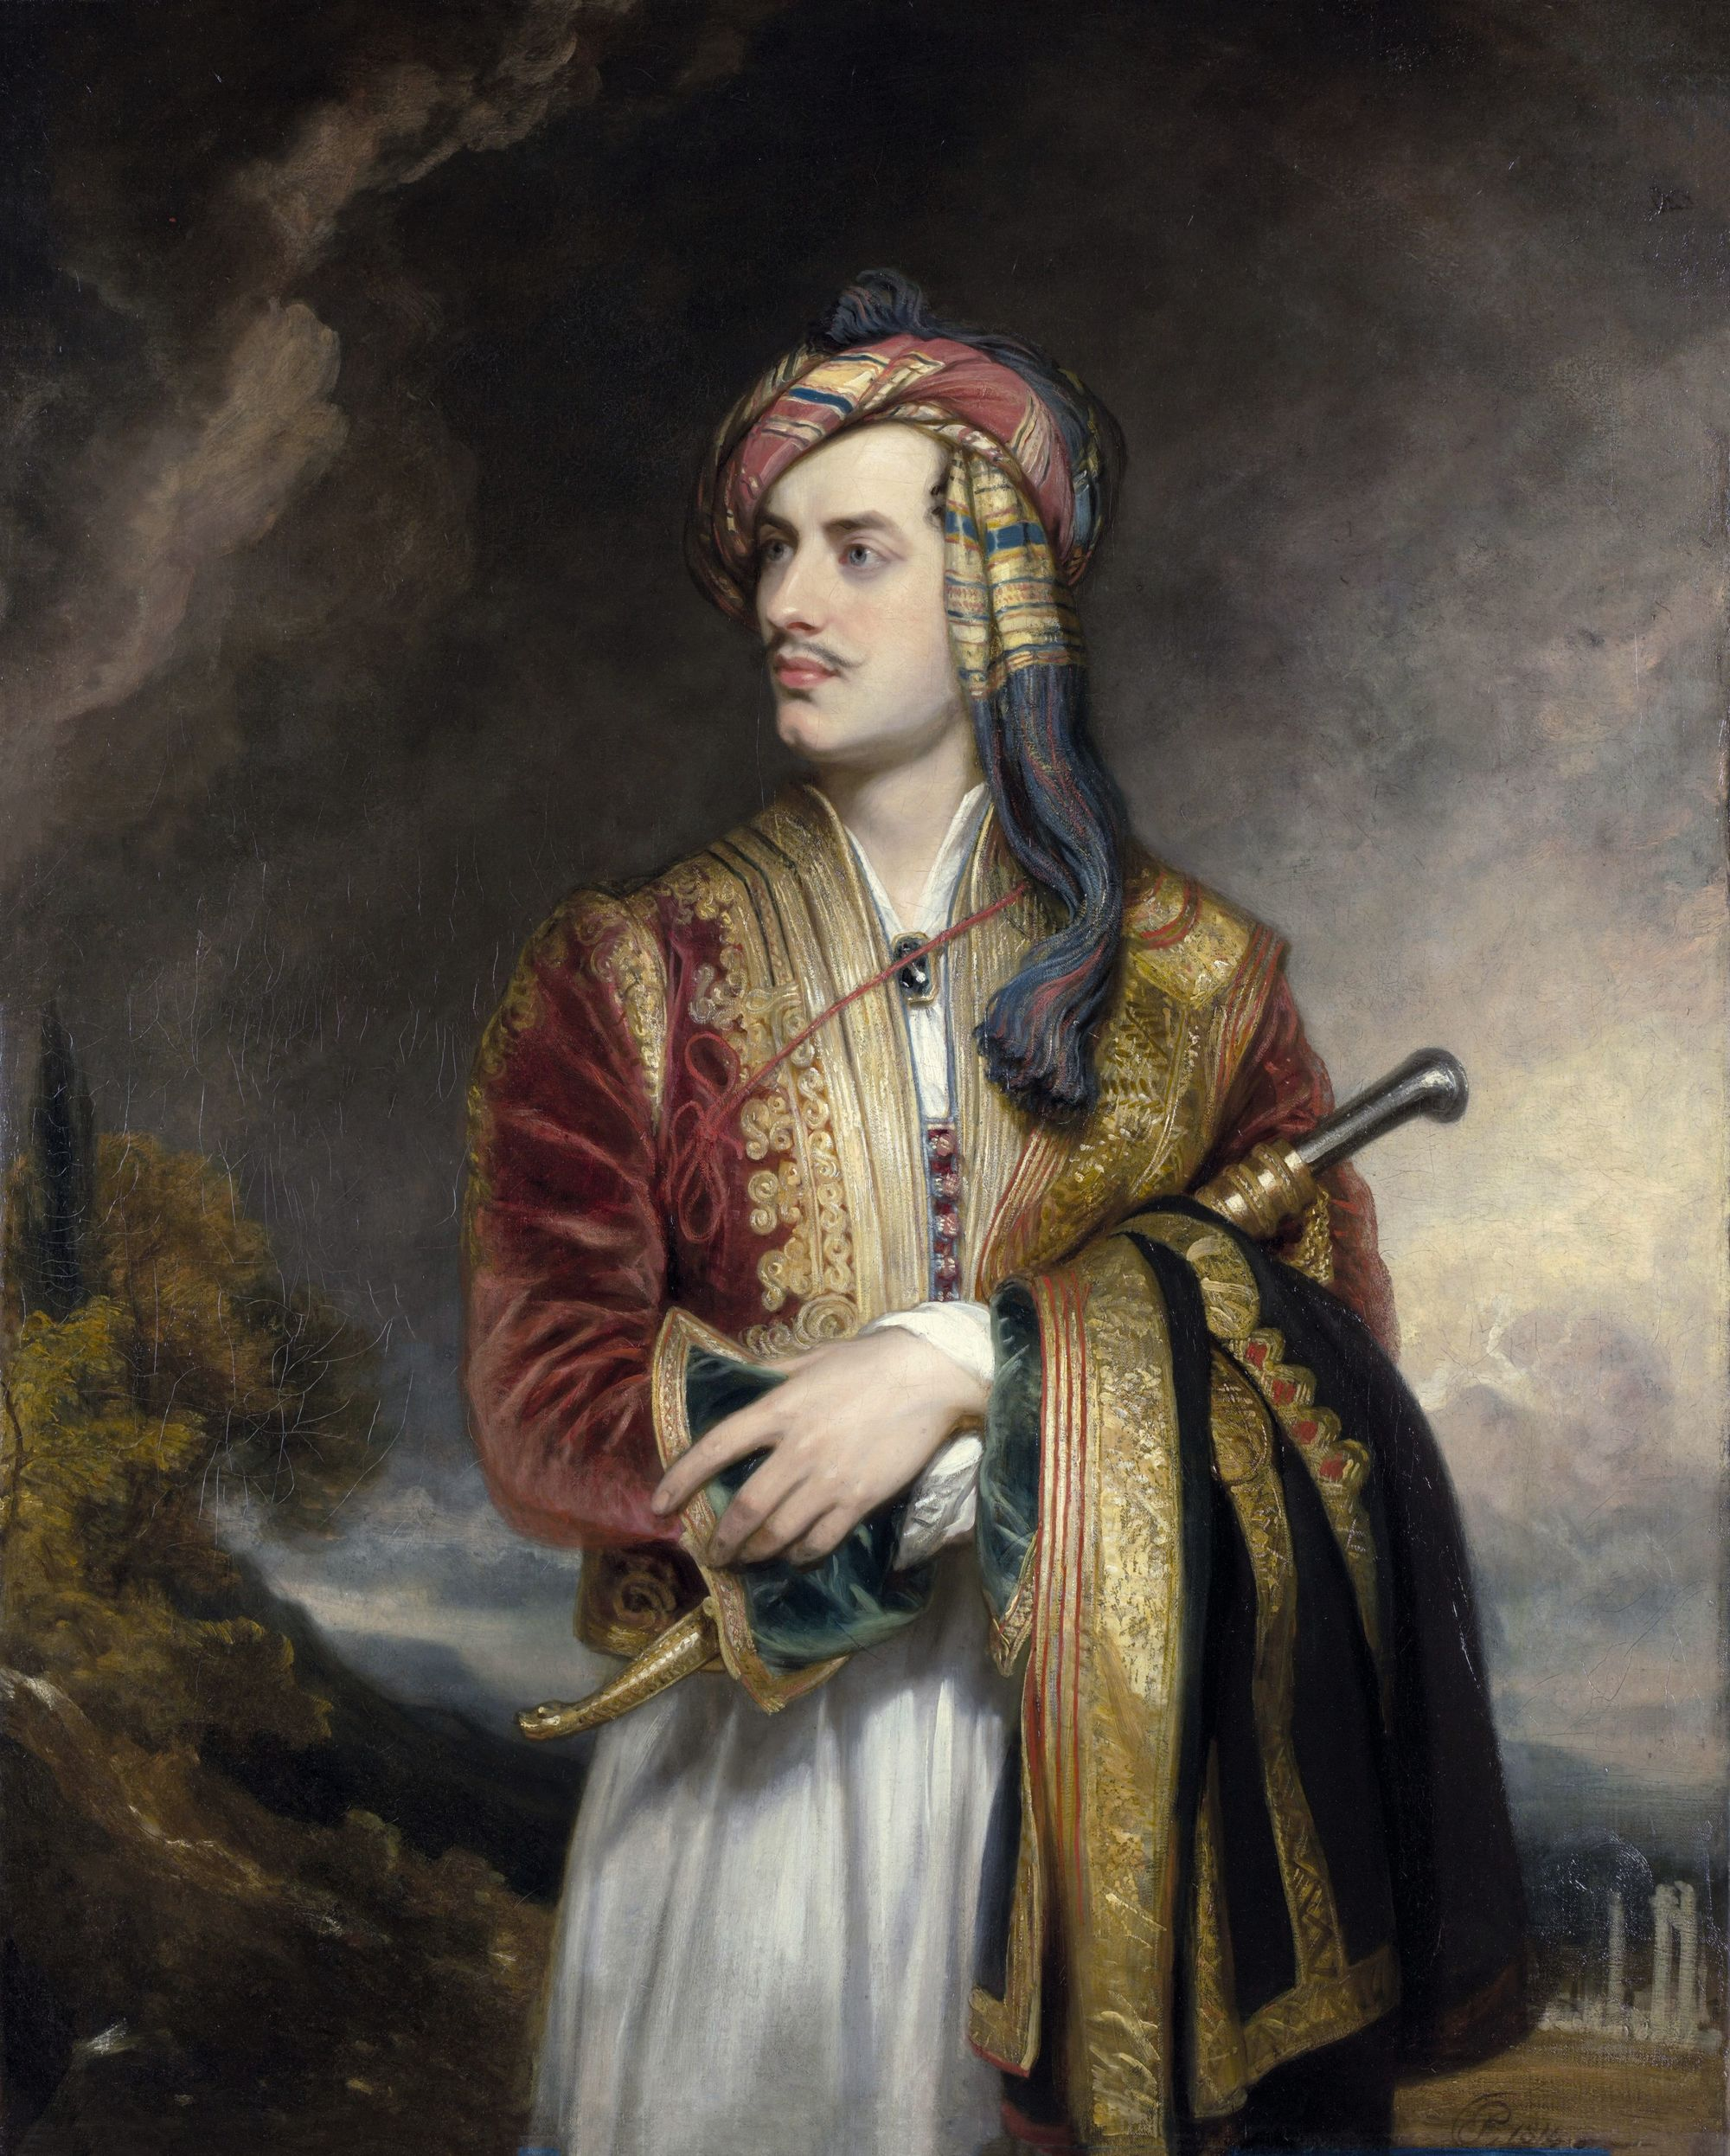 Thomas Phillips, Lord Byron en costume albanais, 1813, huile sur toile, 76,5 x 63,9 cm, National Portrait Gallery, Londres.